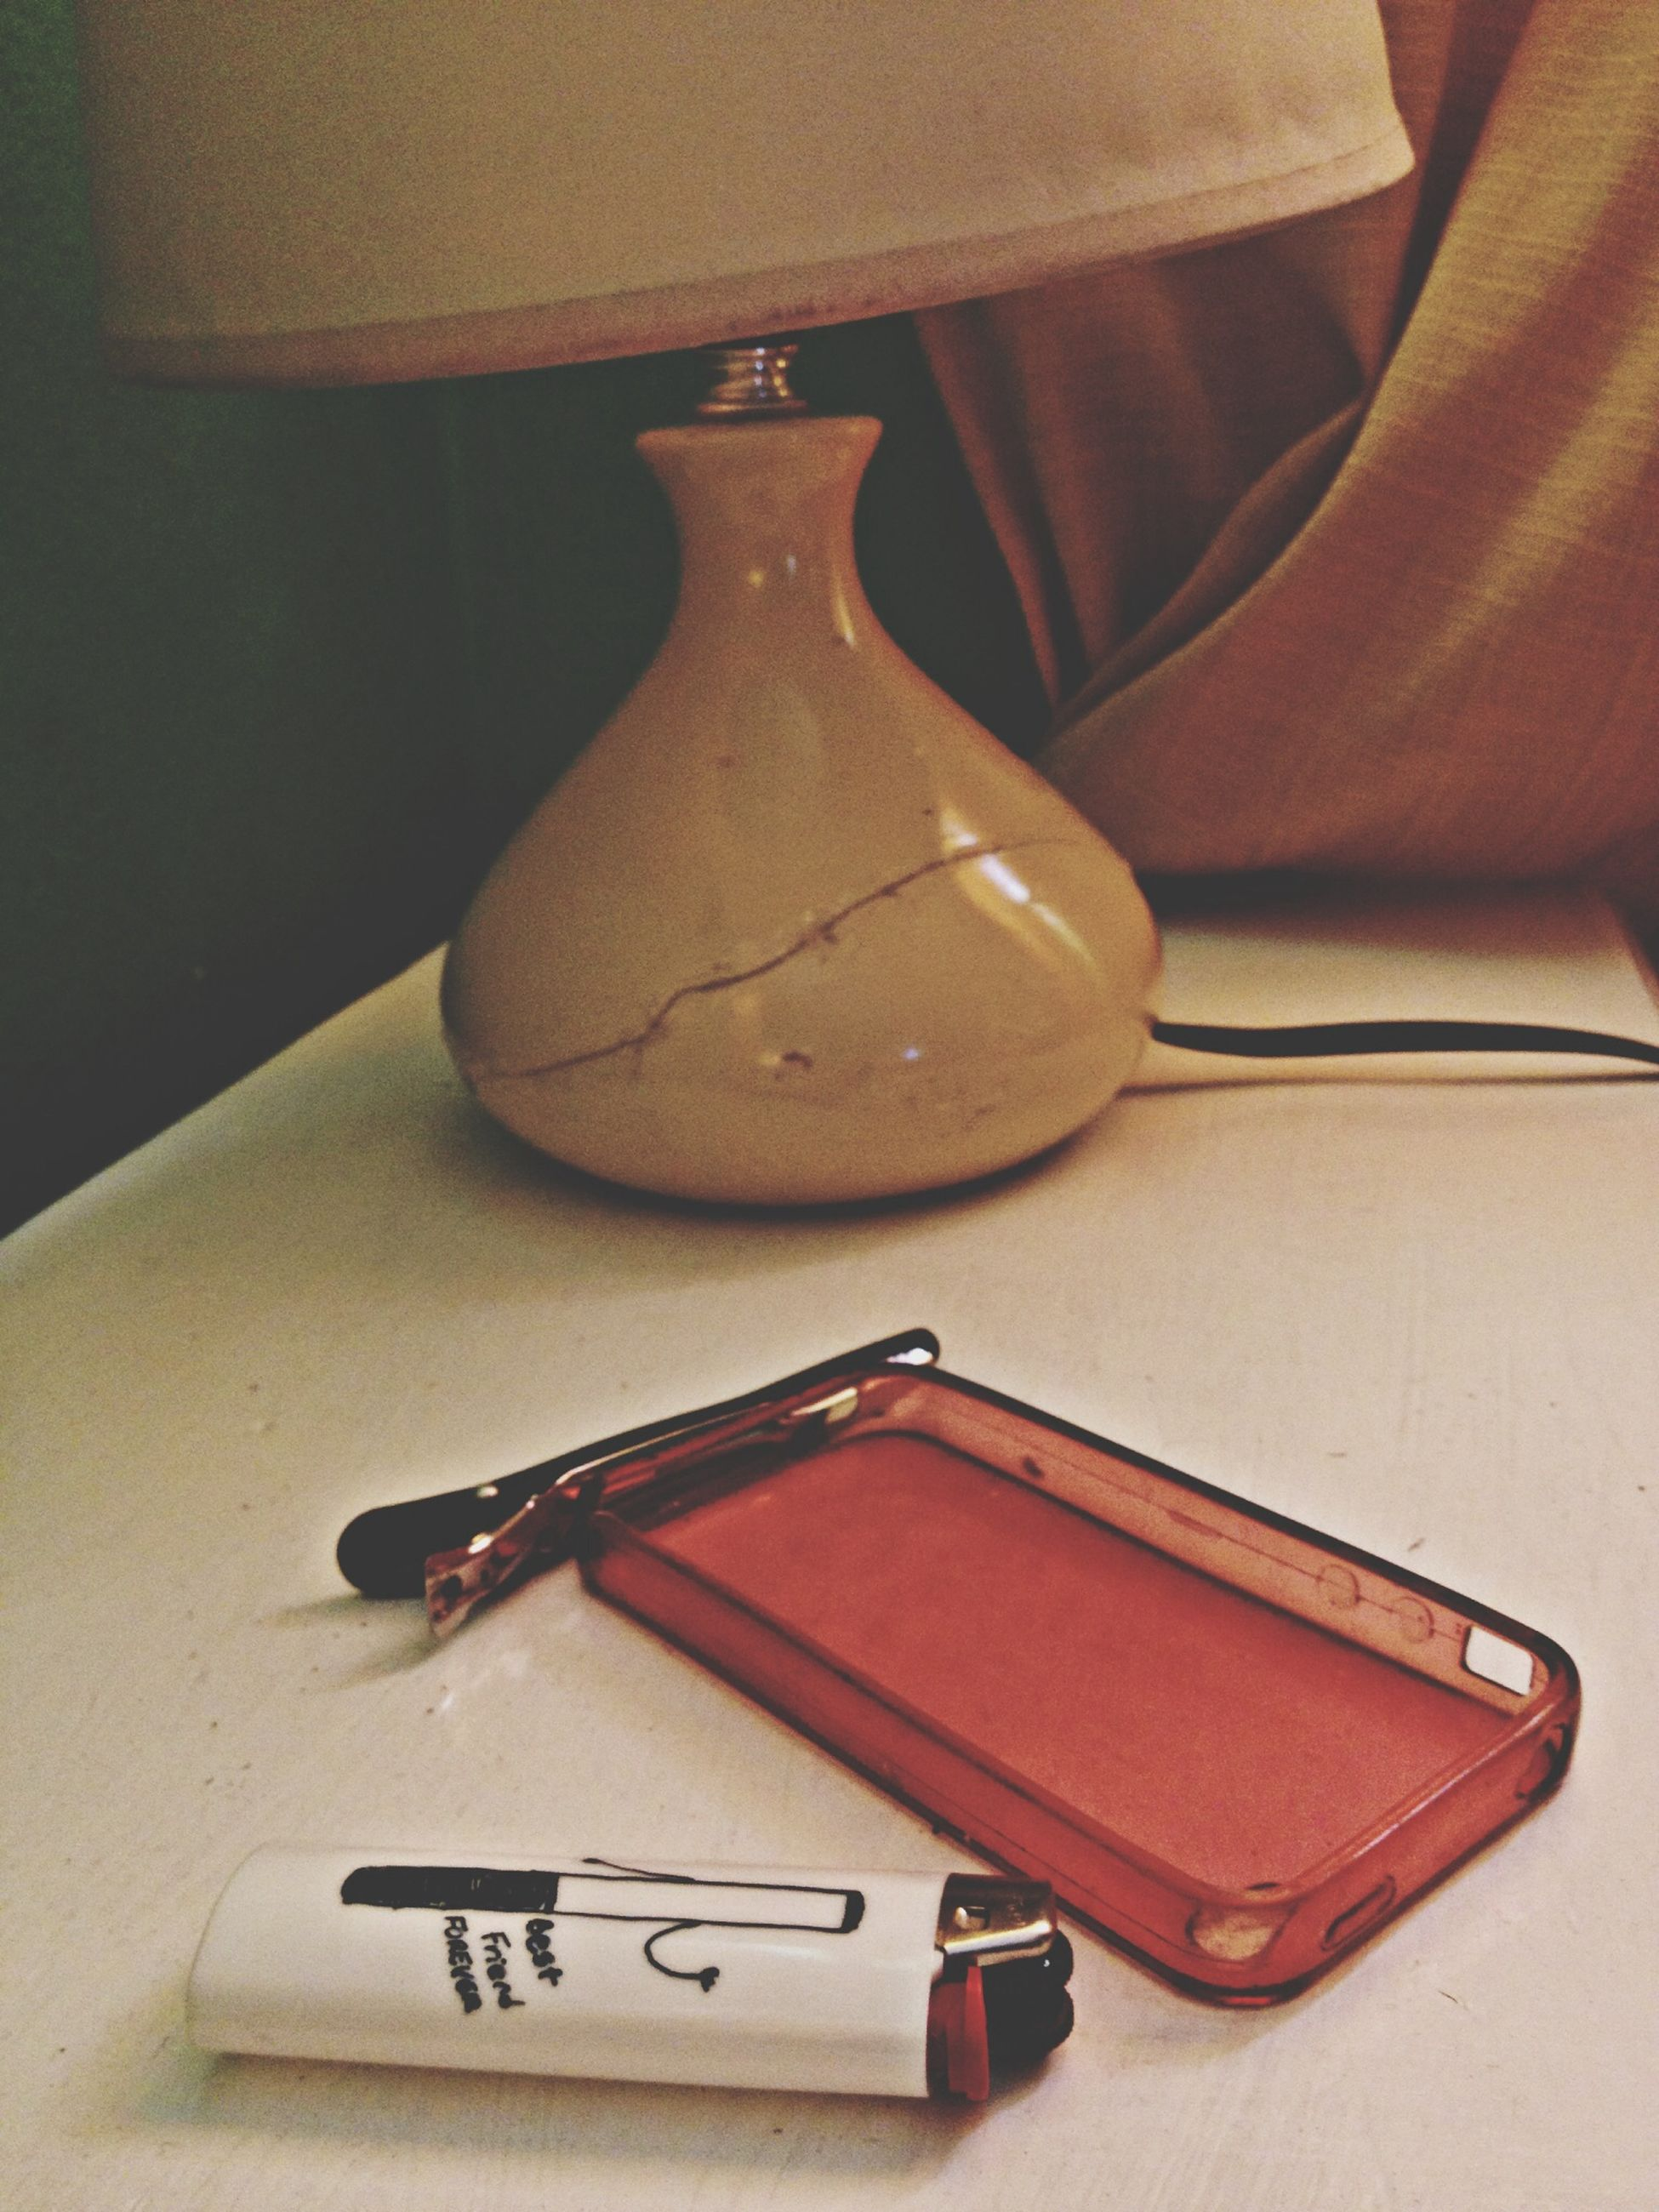 indoors, still life, table, high angle view, close-up, music, musical instrument, arts culture and entertainment, single object, no people, wood - material, fashion, technology, paper, old-fashioned, book, work tool, communication, studio shot, education